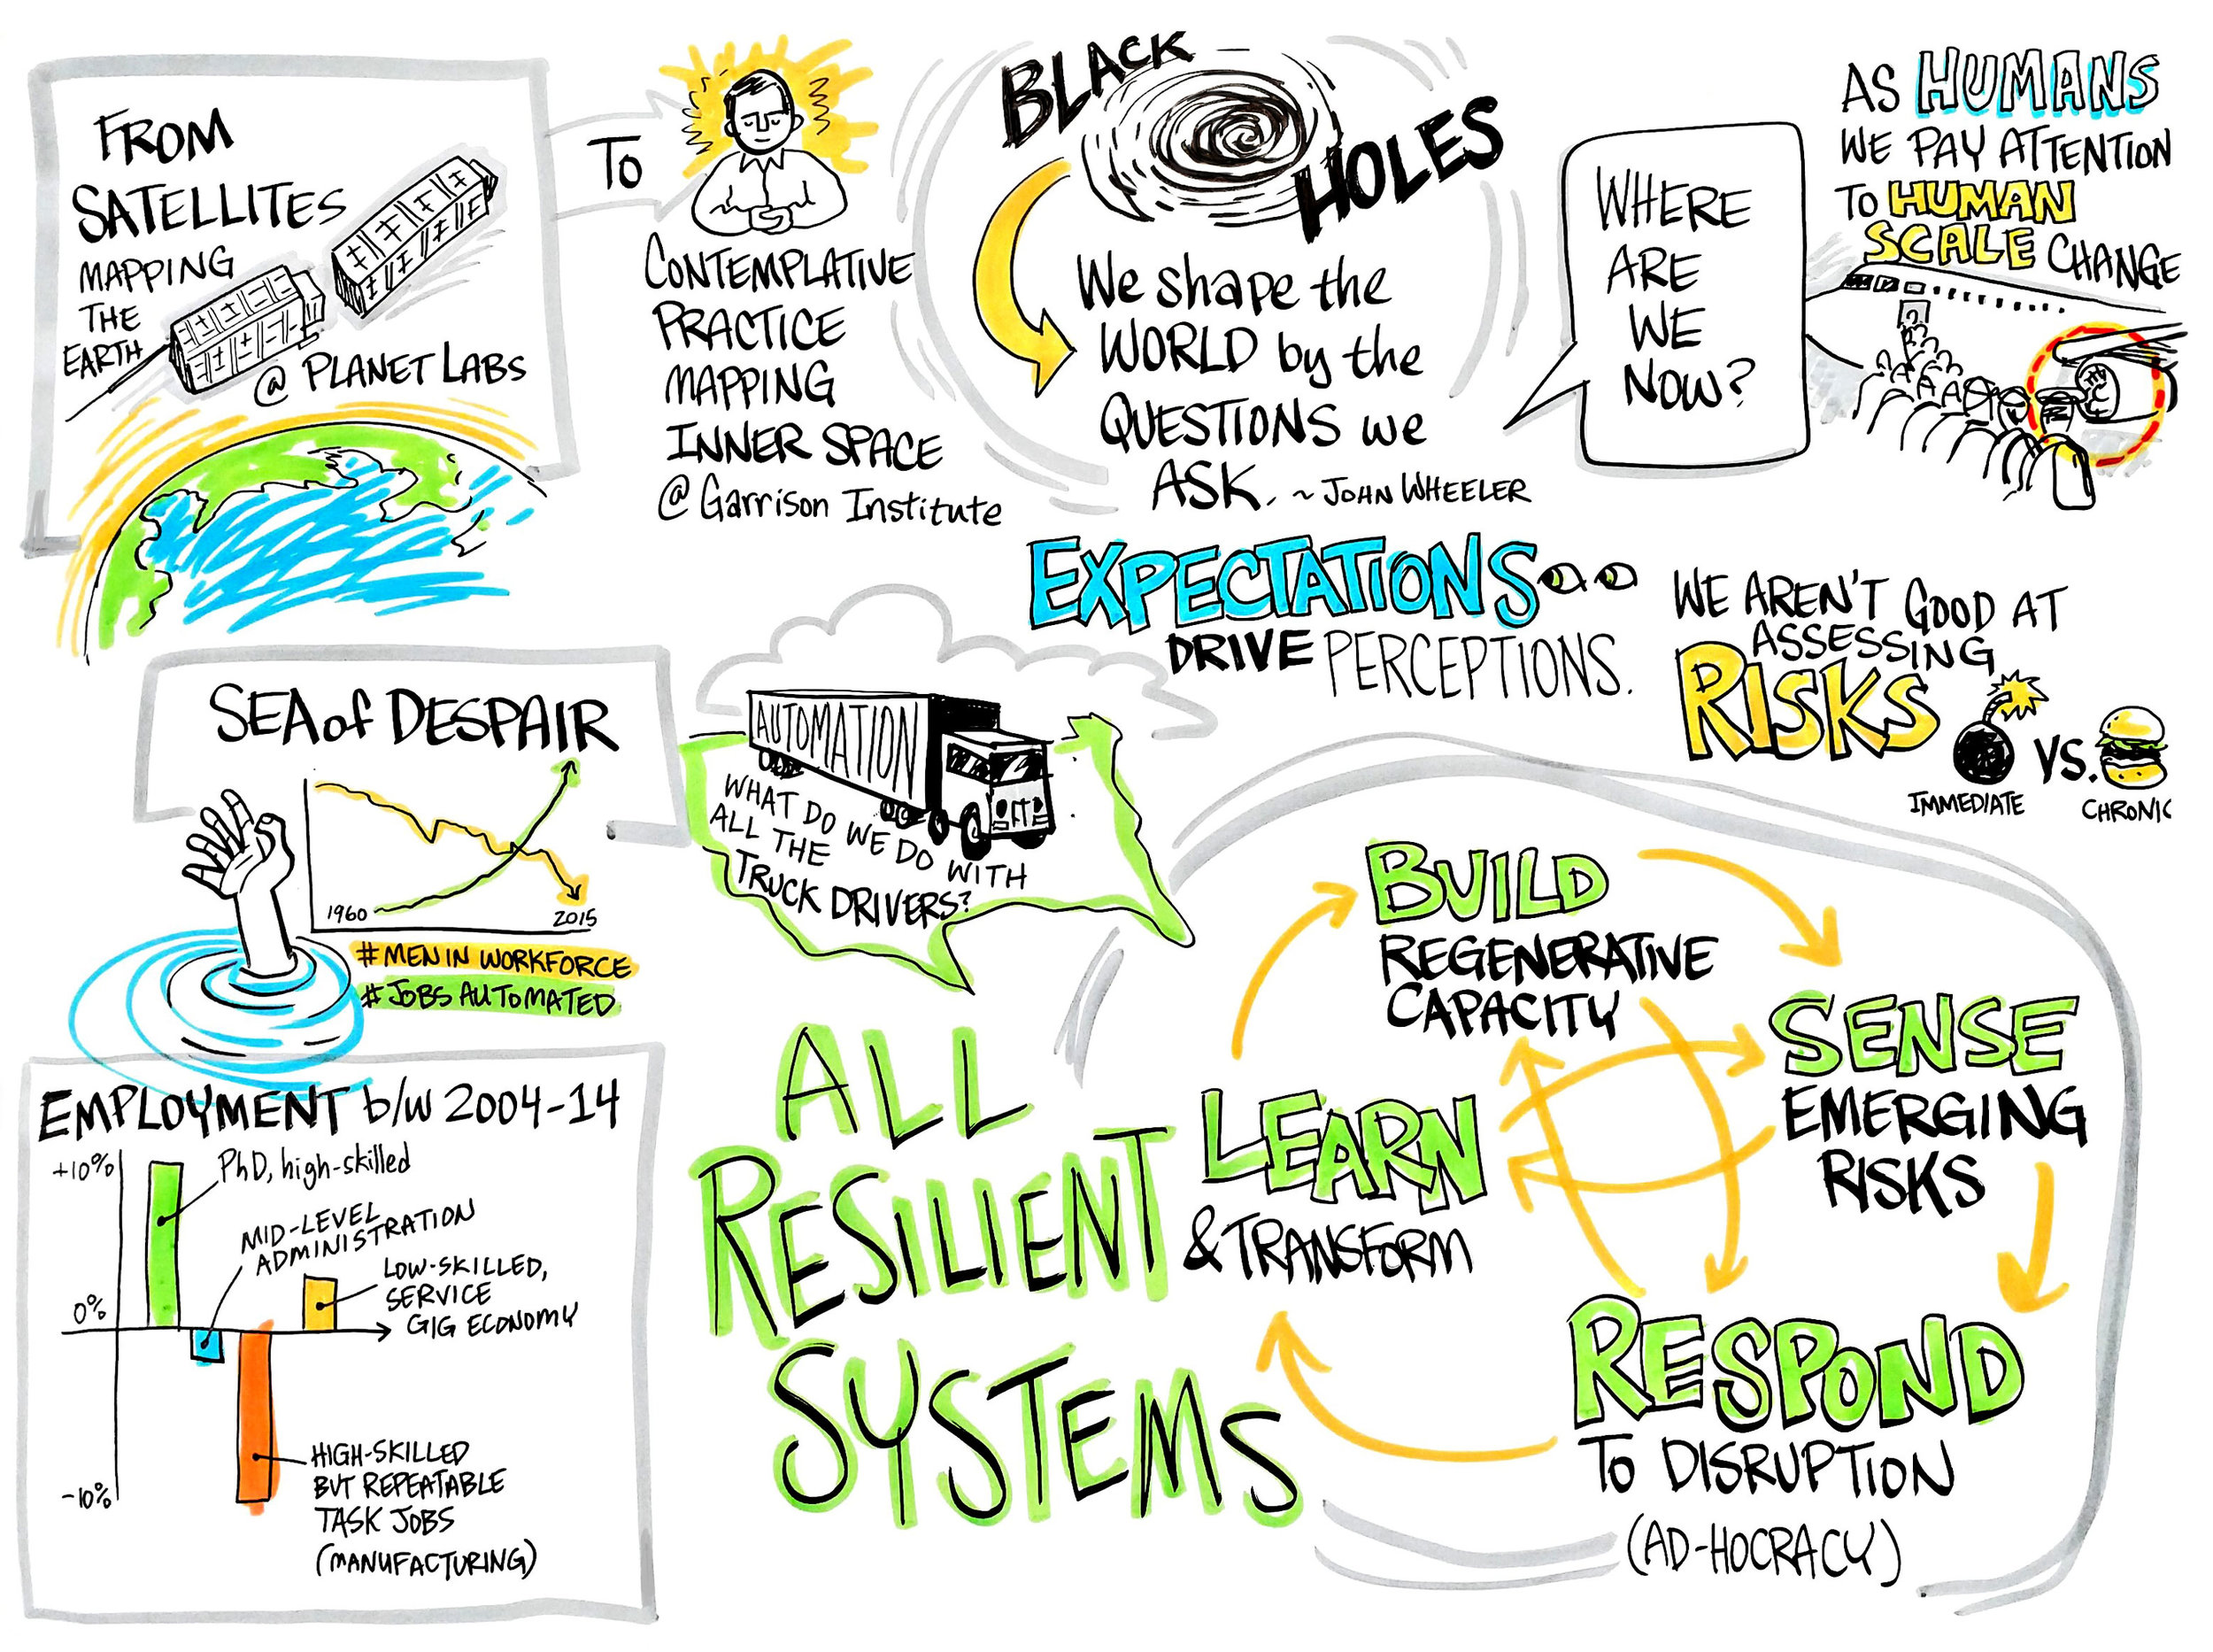 03-All-Resilient-Systems20180425_171829999.jpg